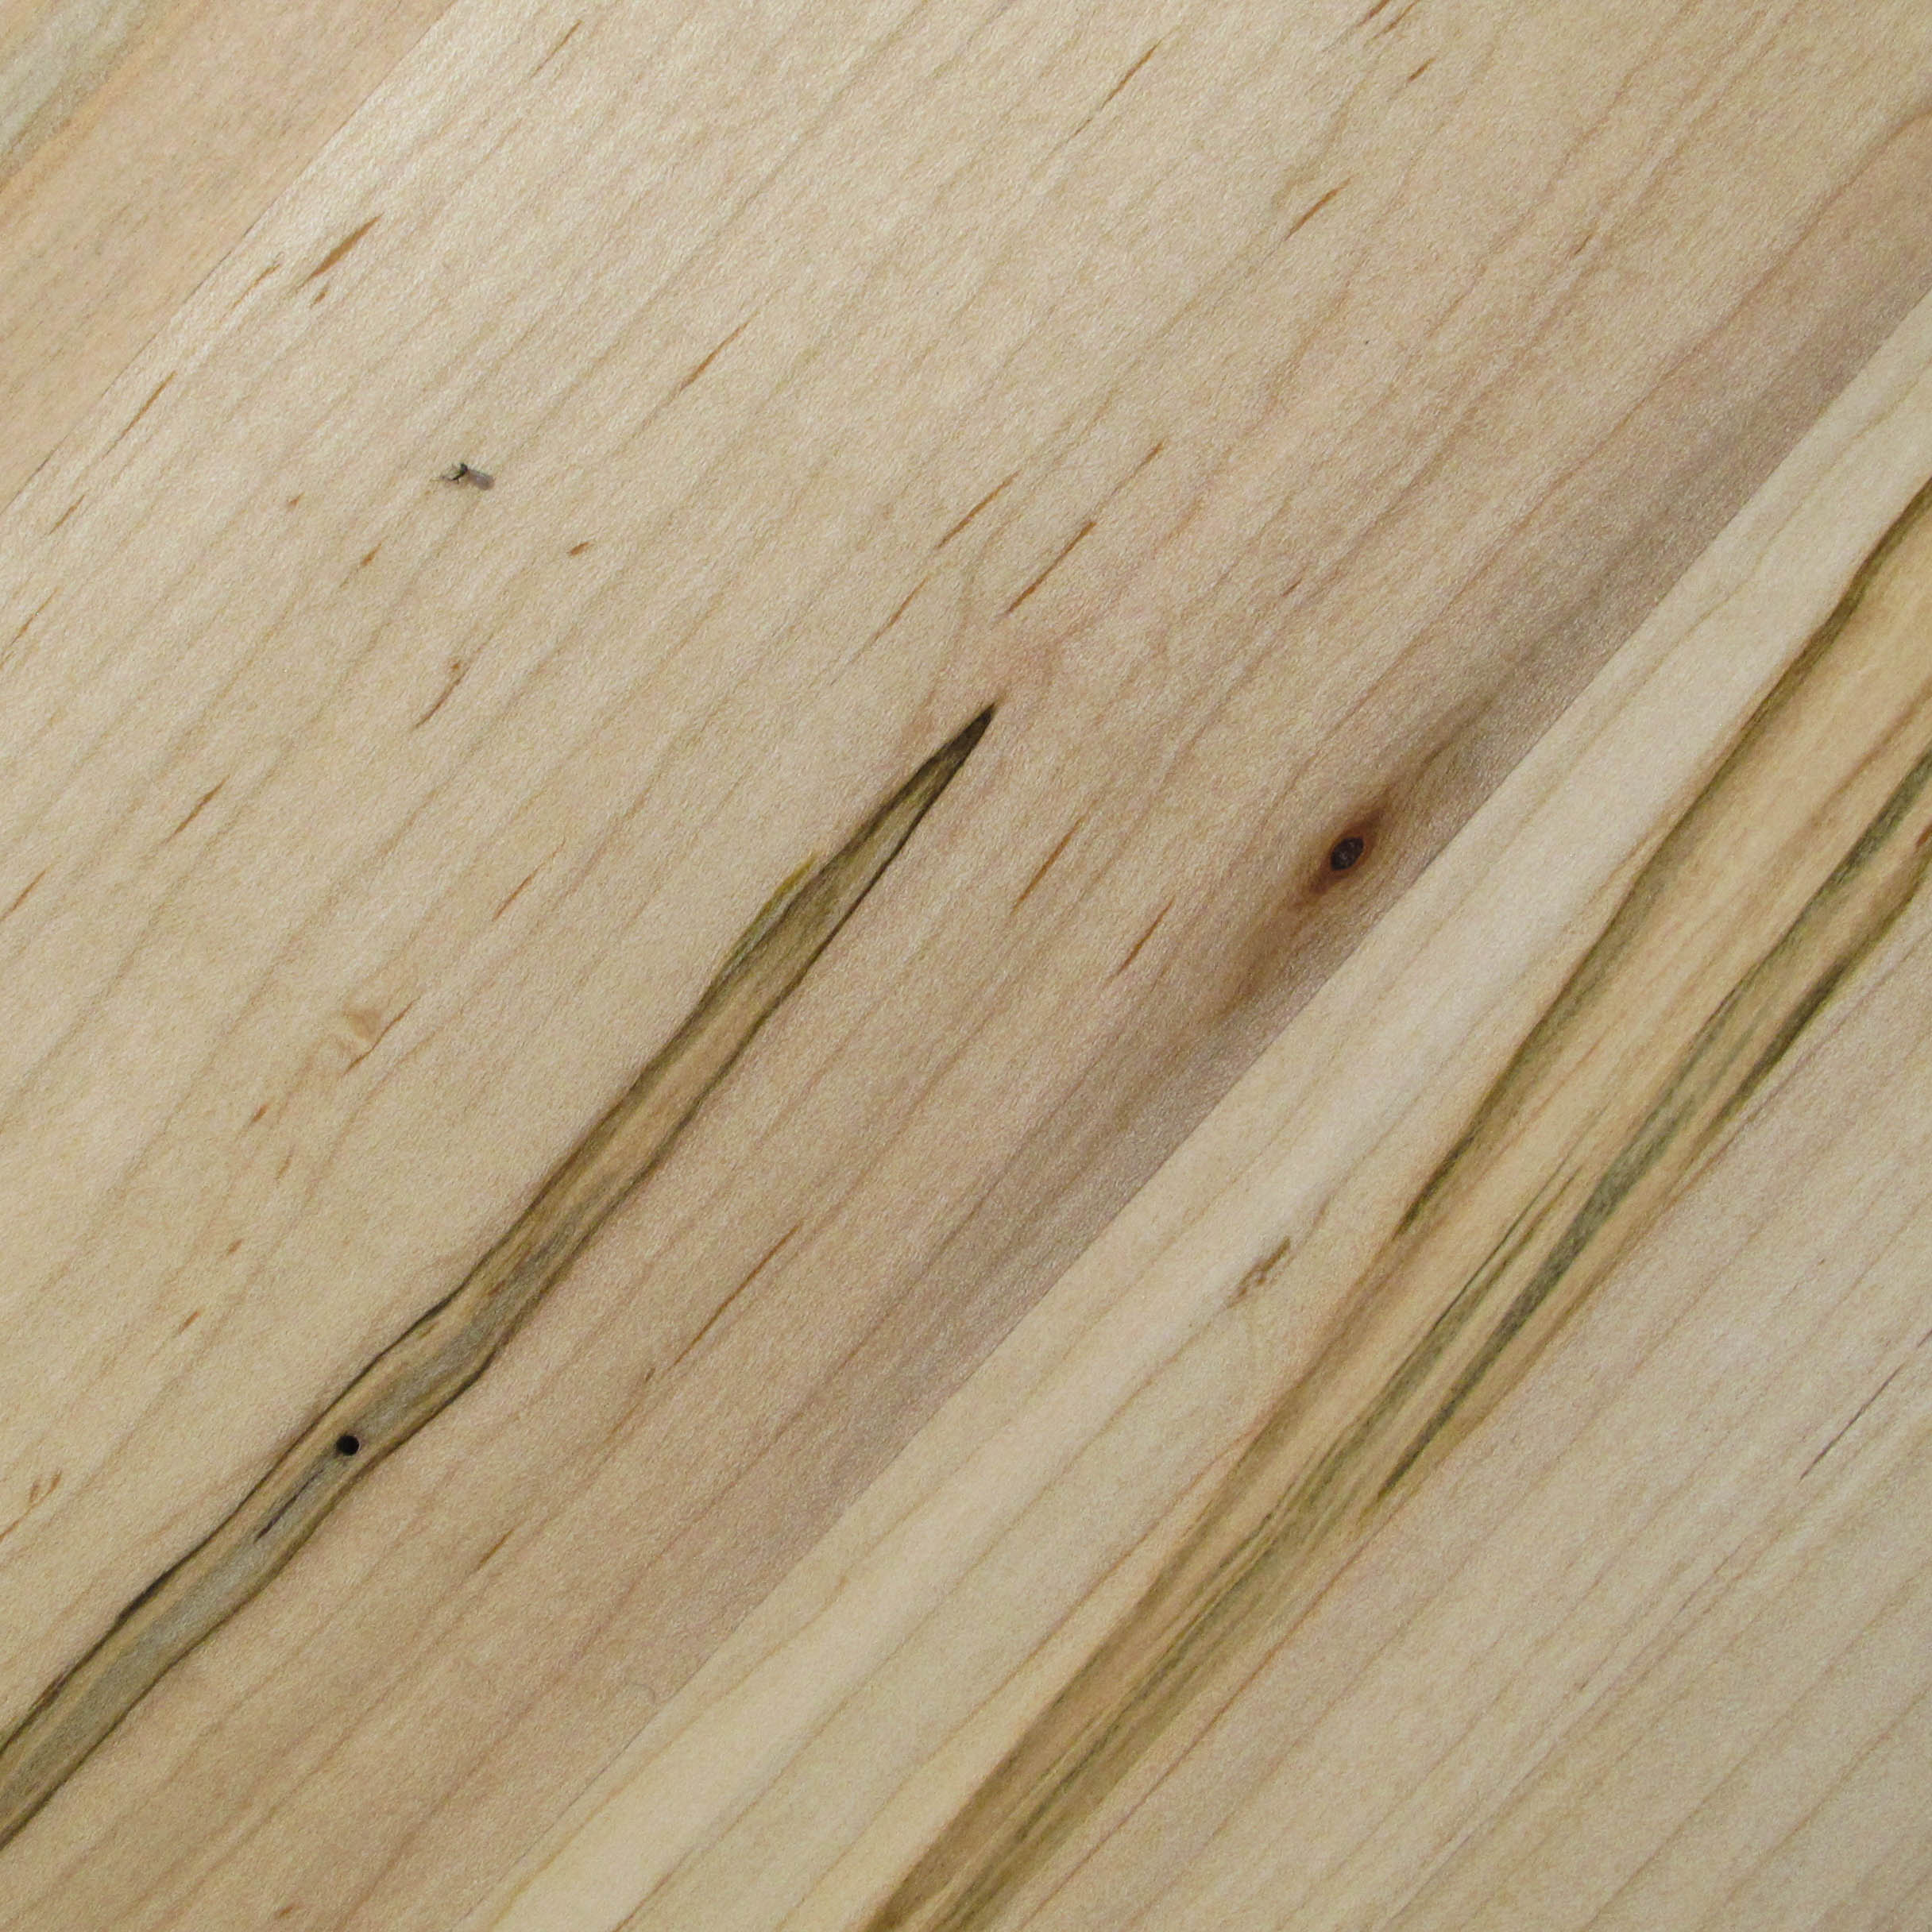 The wood I selected for our Neptune table, our solid maple is selected for maximum grain contrast and natural pitting.